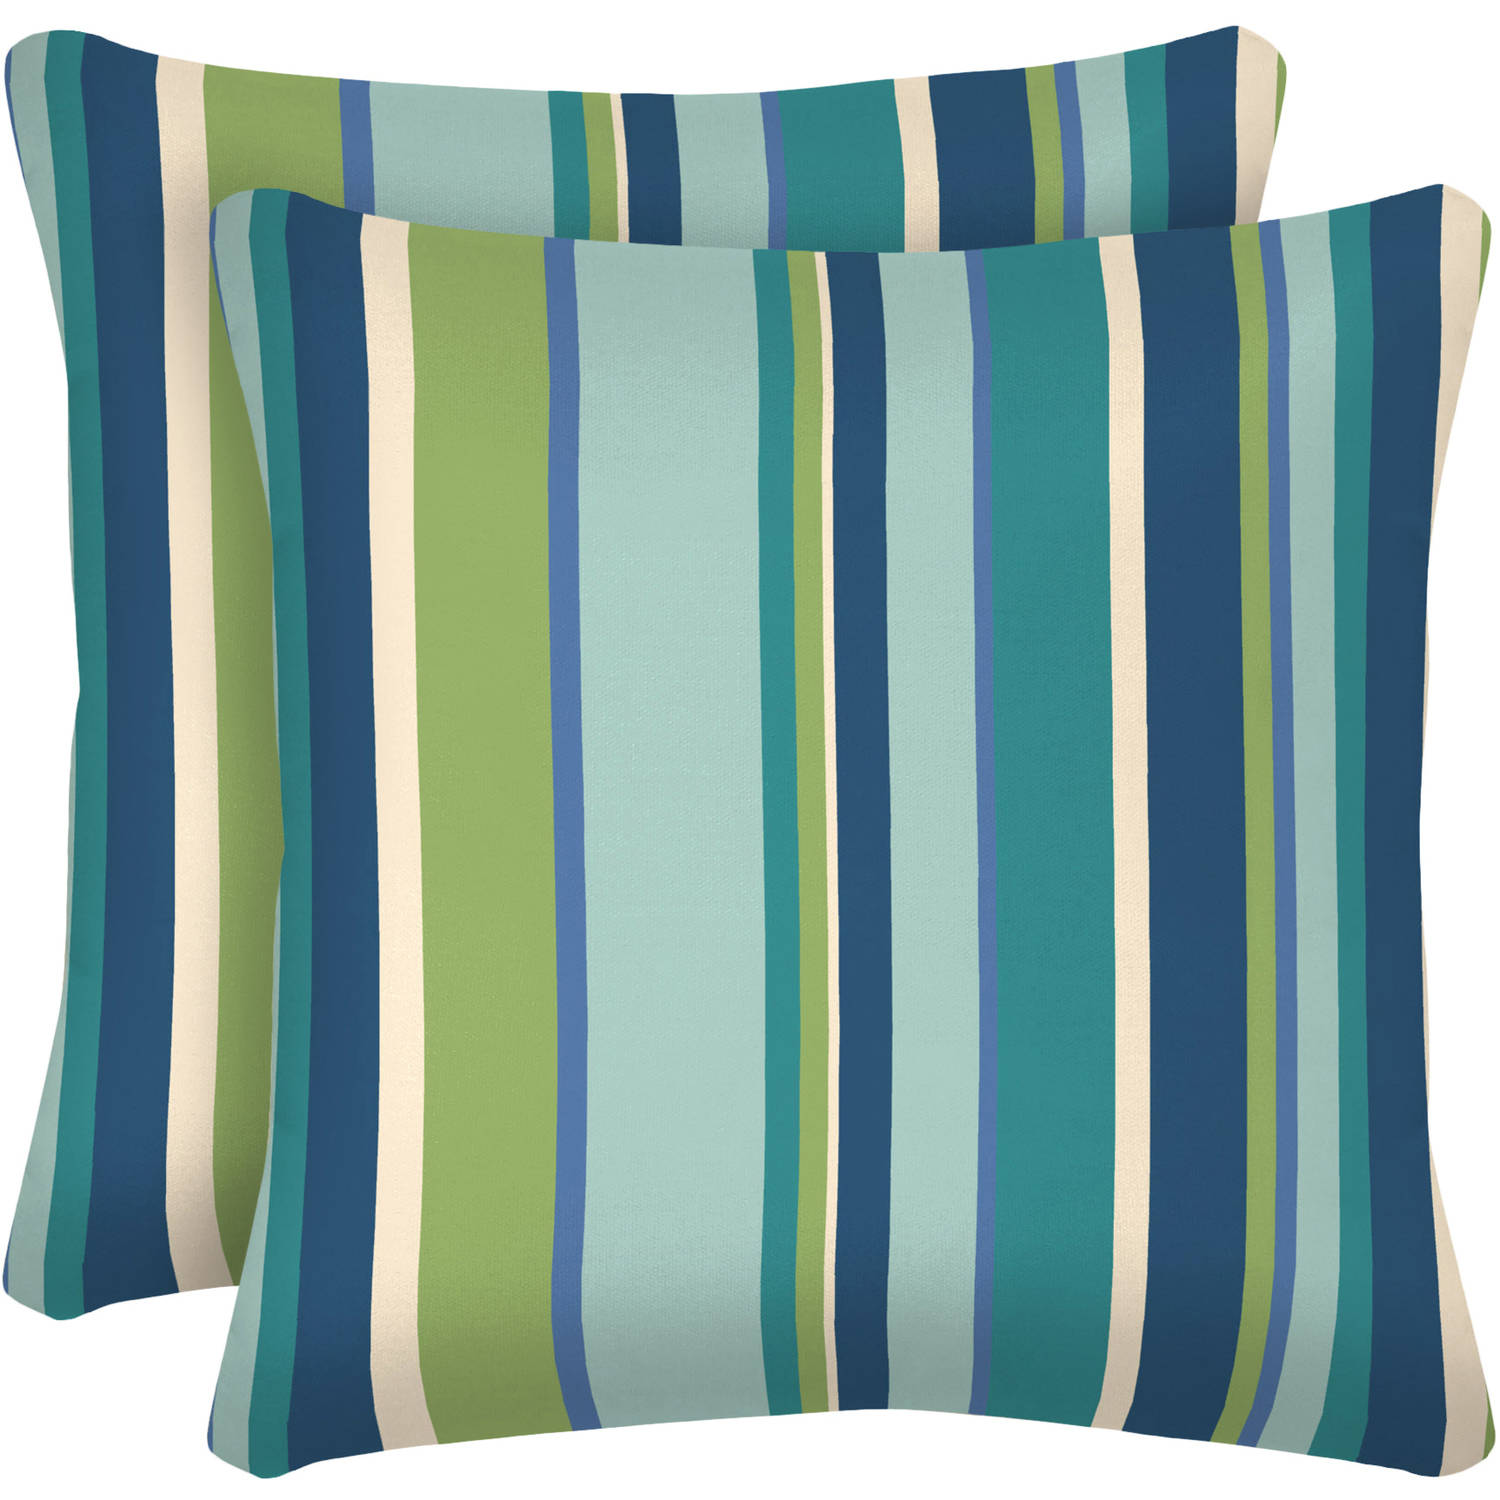 "Better Homes and Gardens Outdoor Patio 16"" Square Toss Pillow, Set of Two, Multiple Patterns"